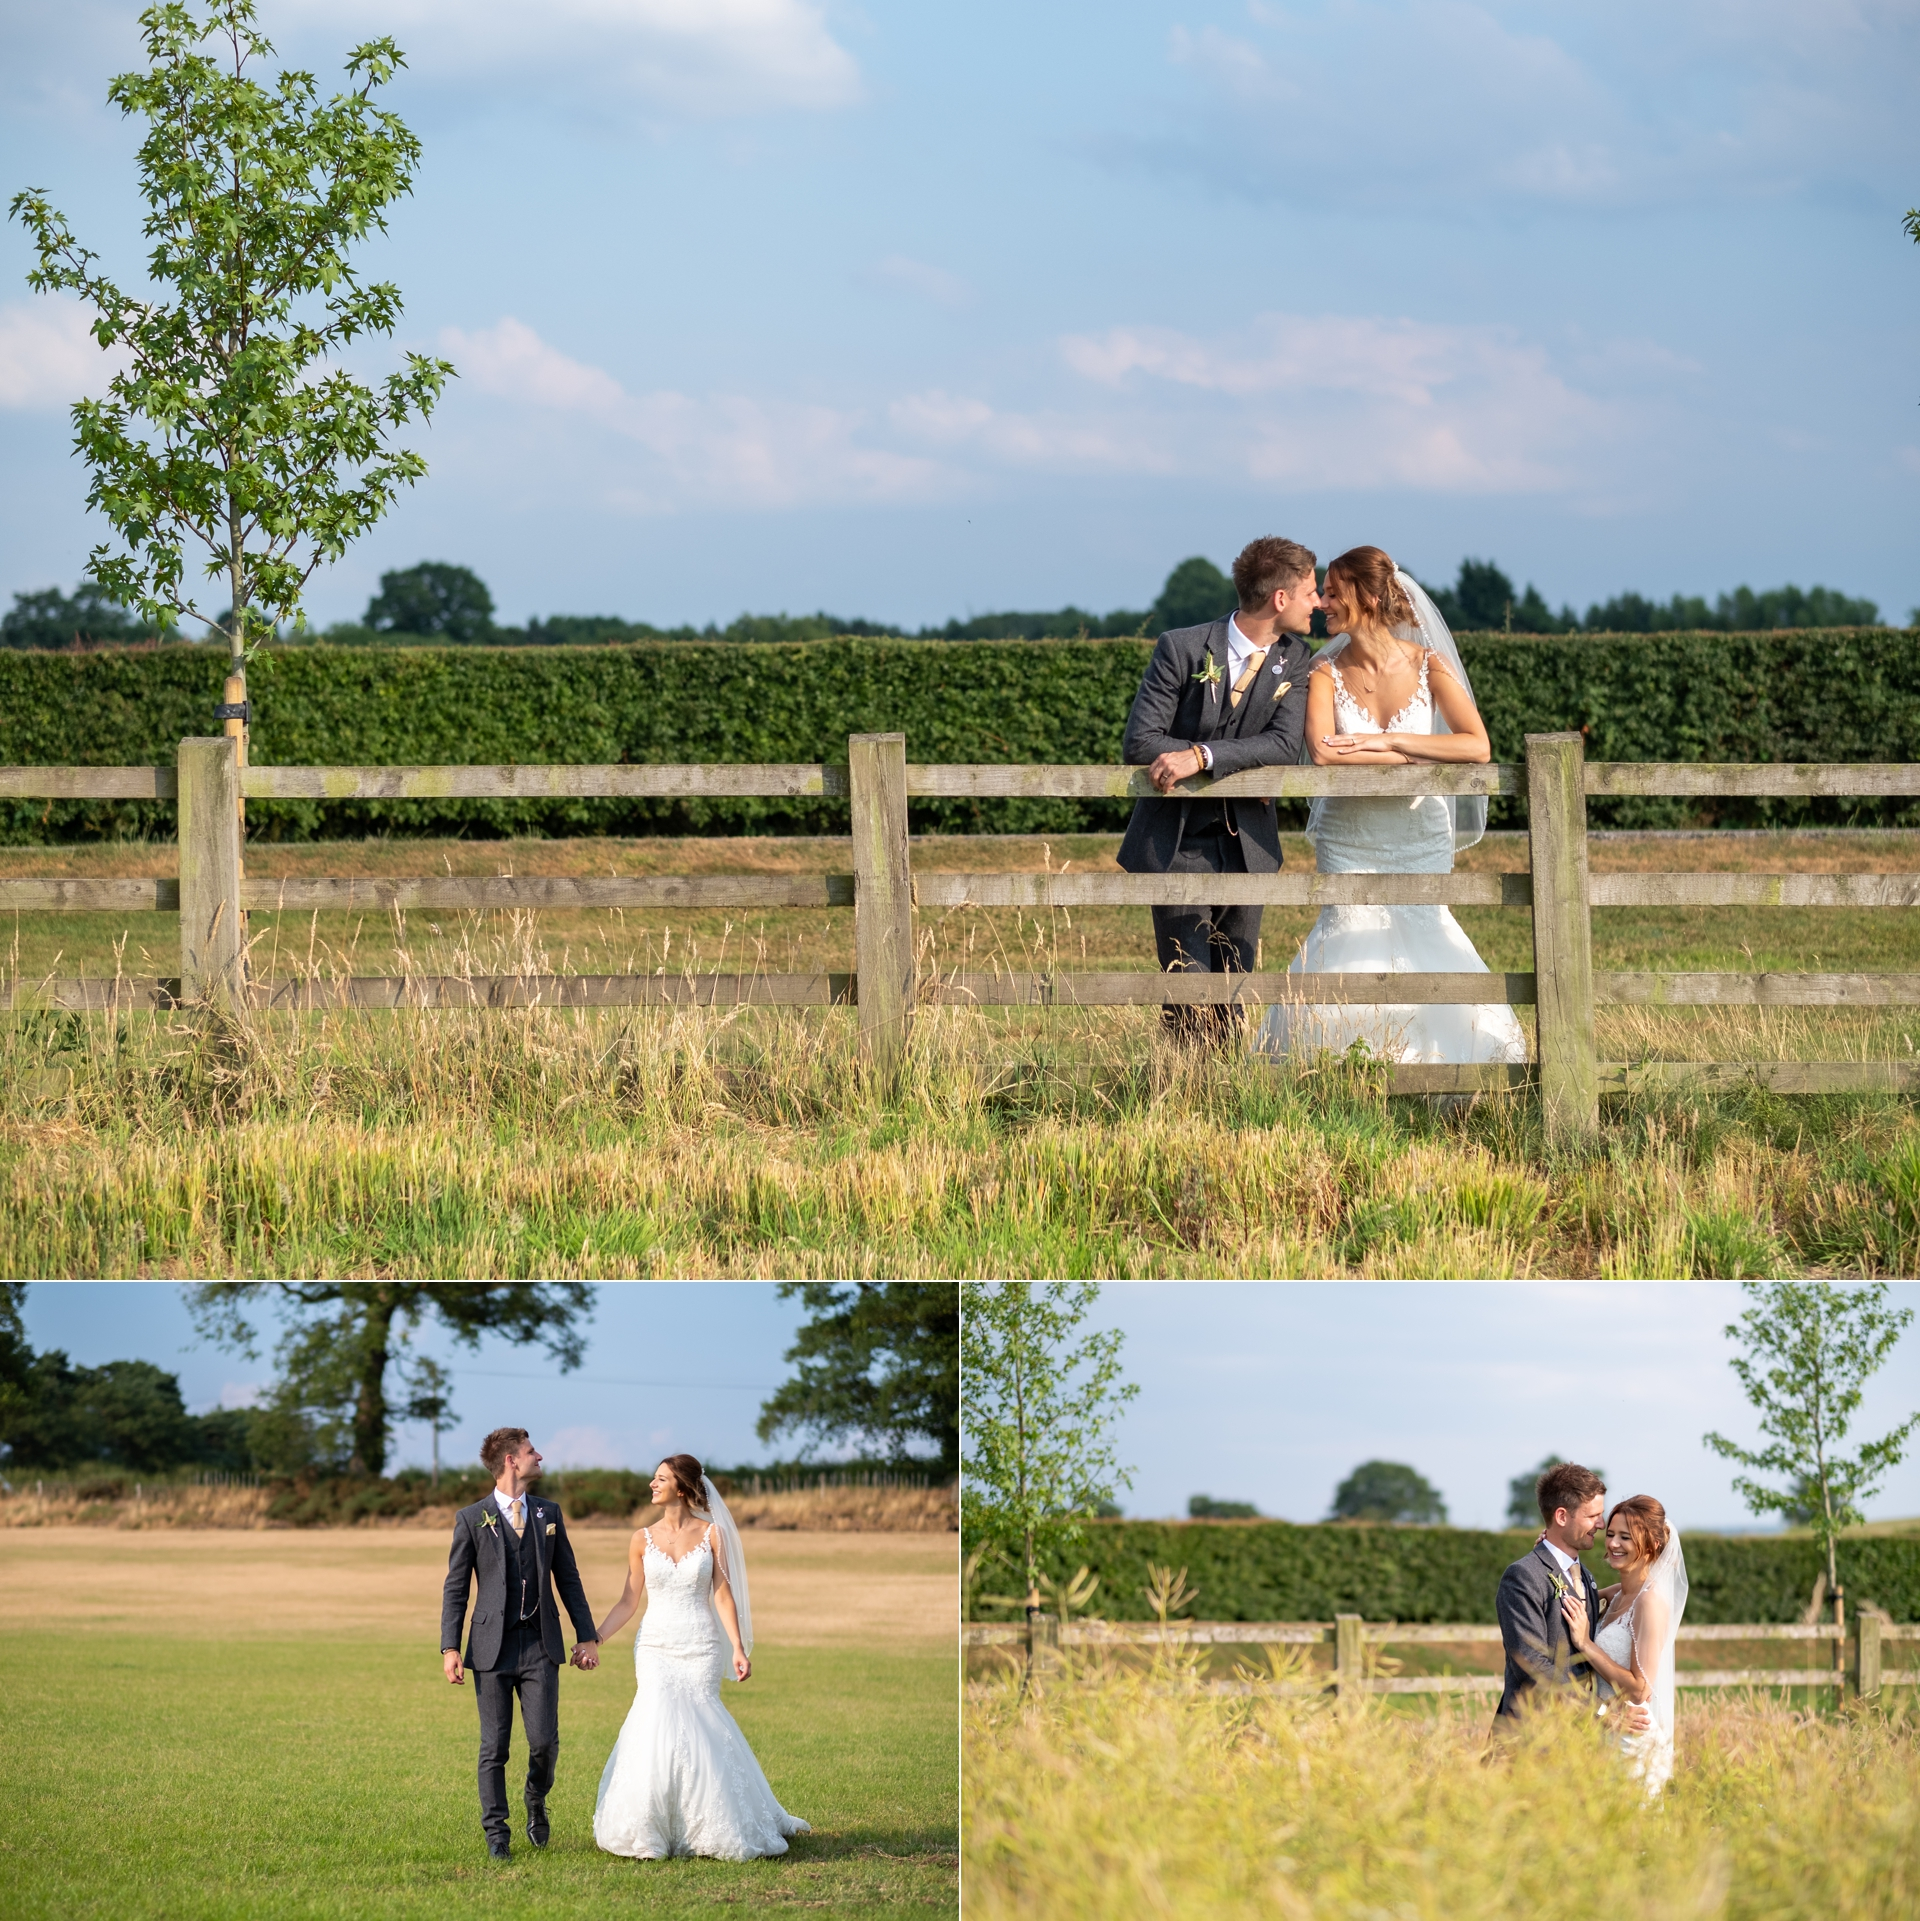 wedding photo sandhole oak barn 11.jpg